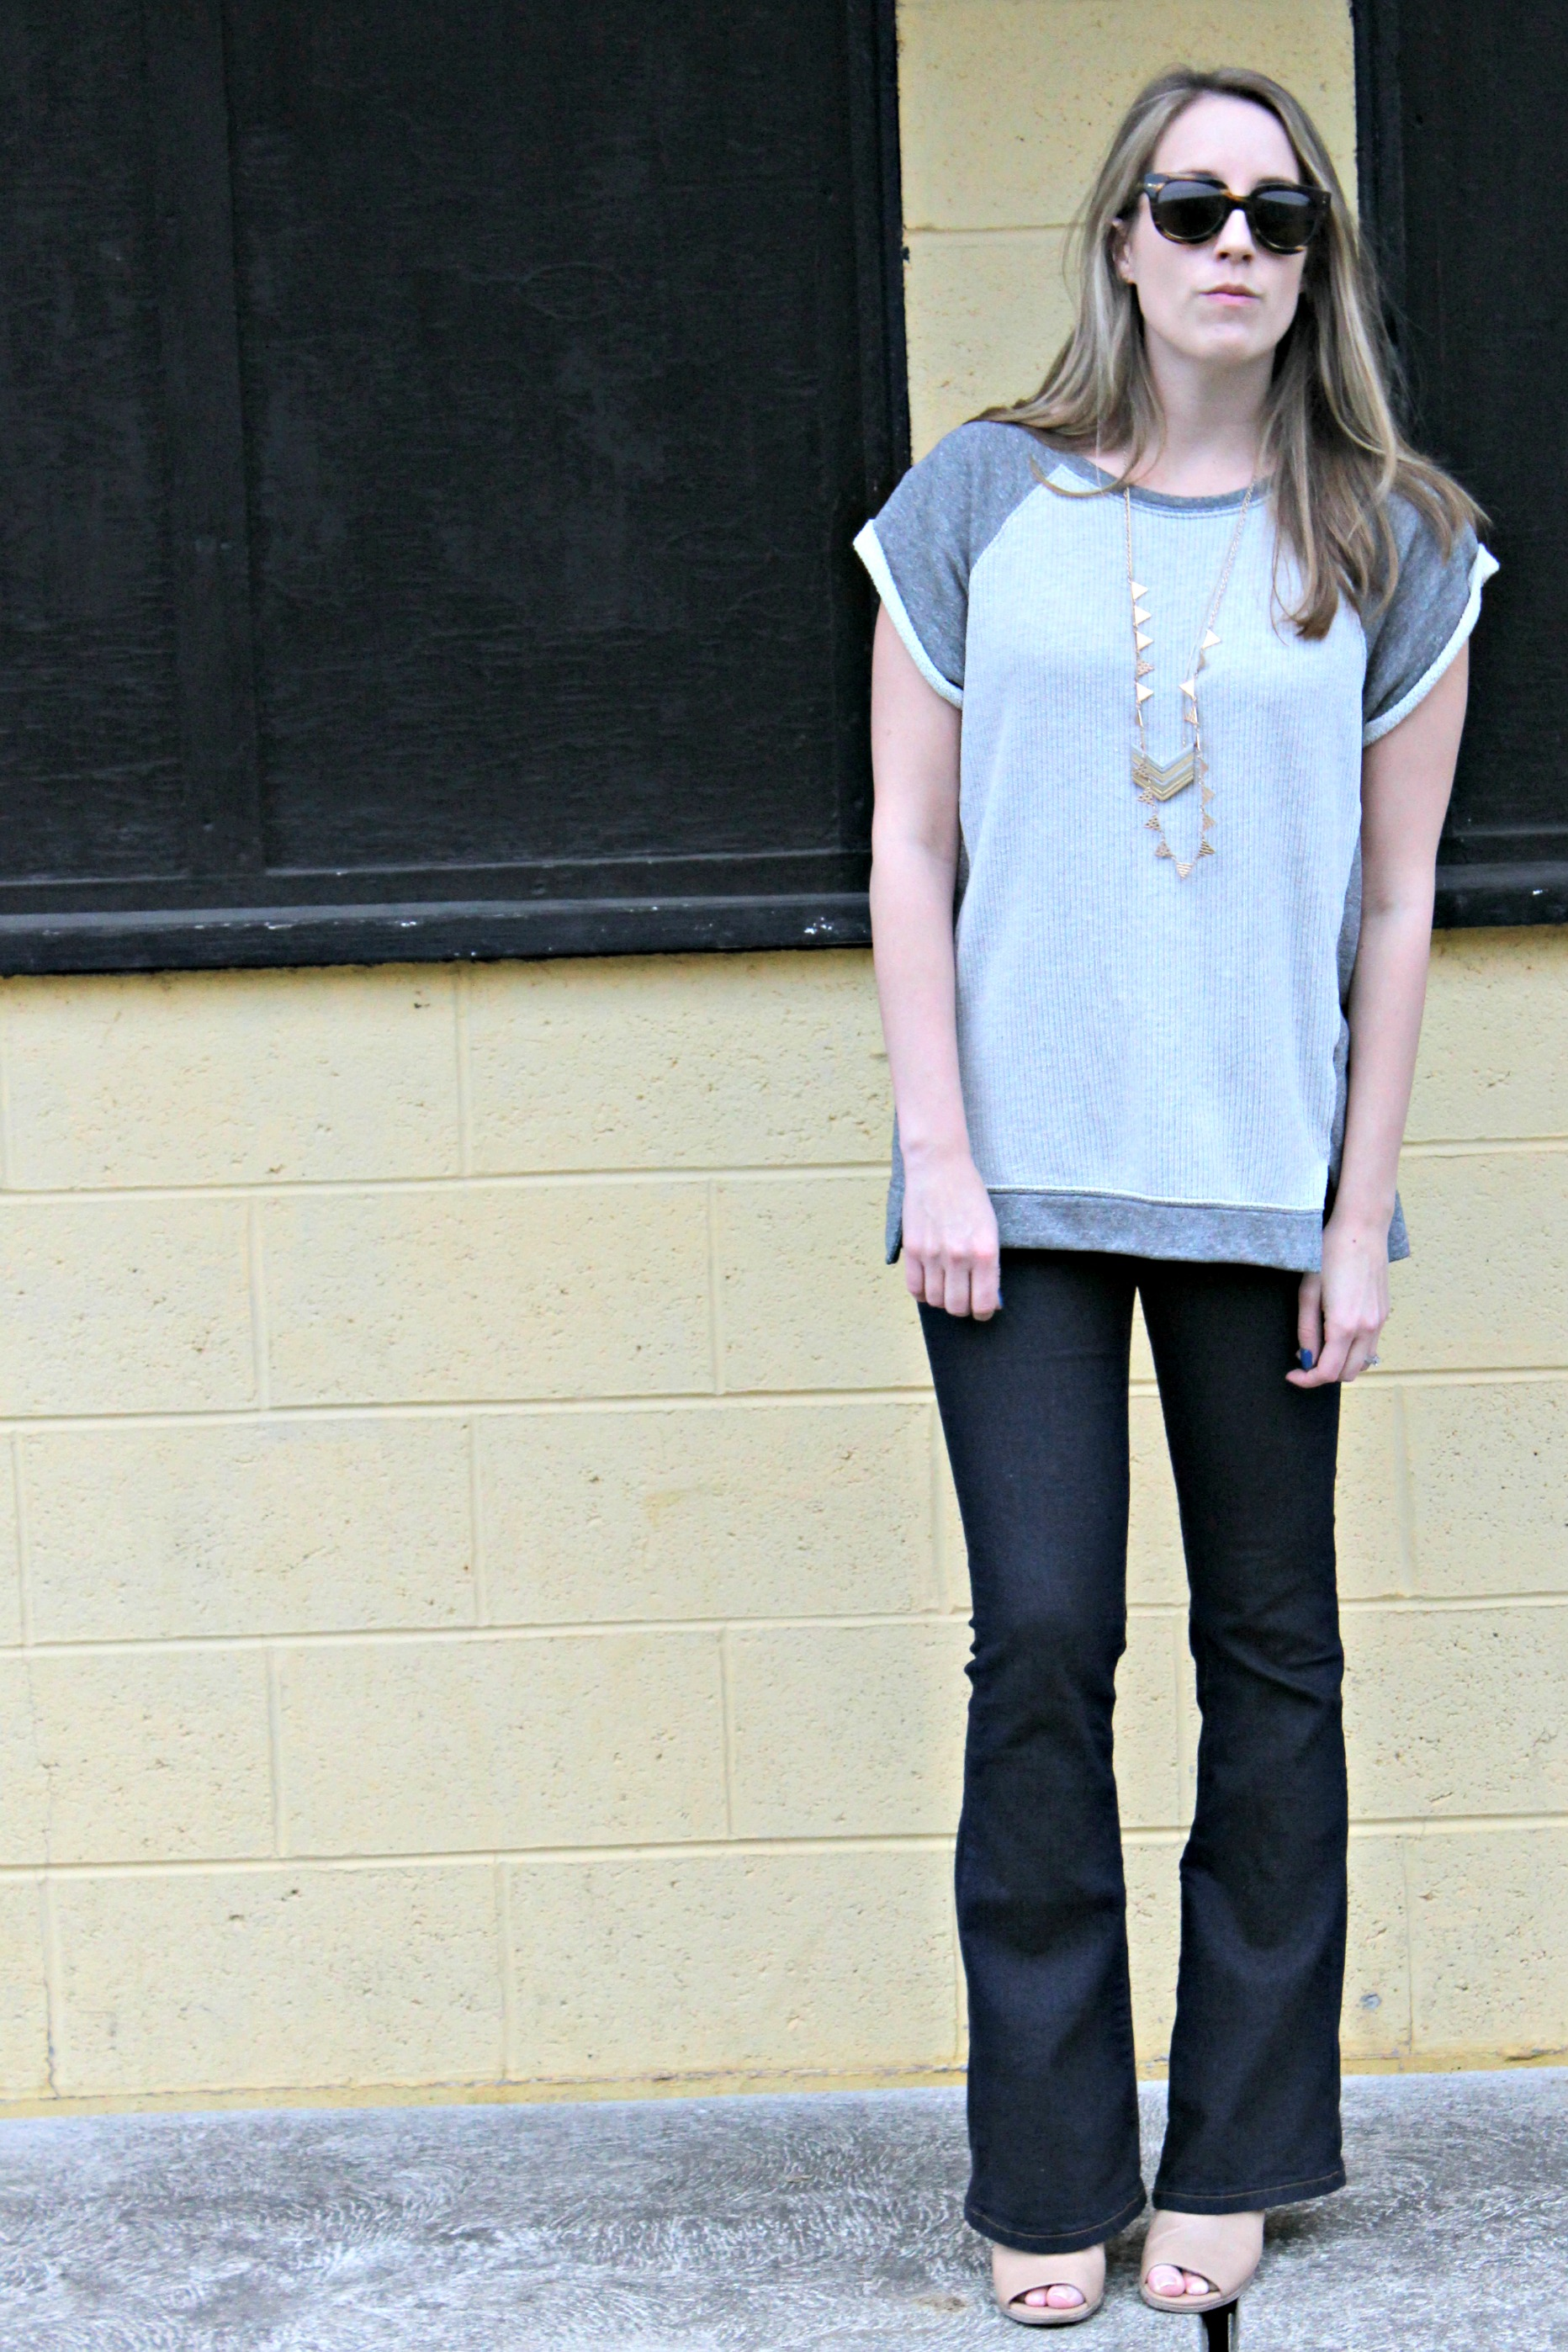 Wearing: Short Sleeves and Long Flares